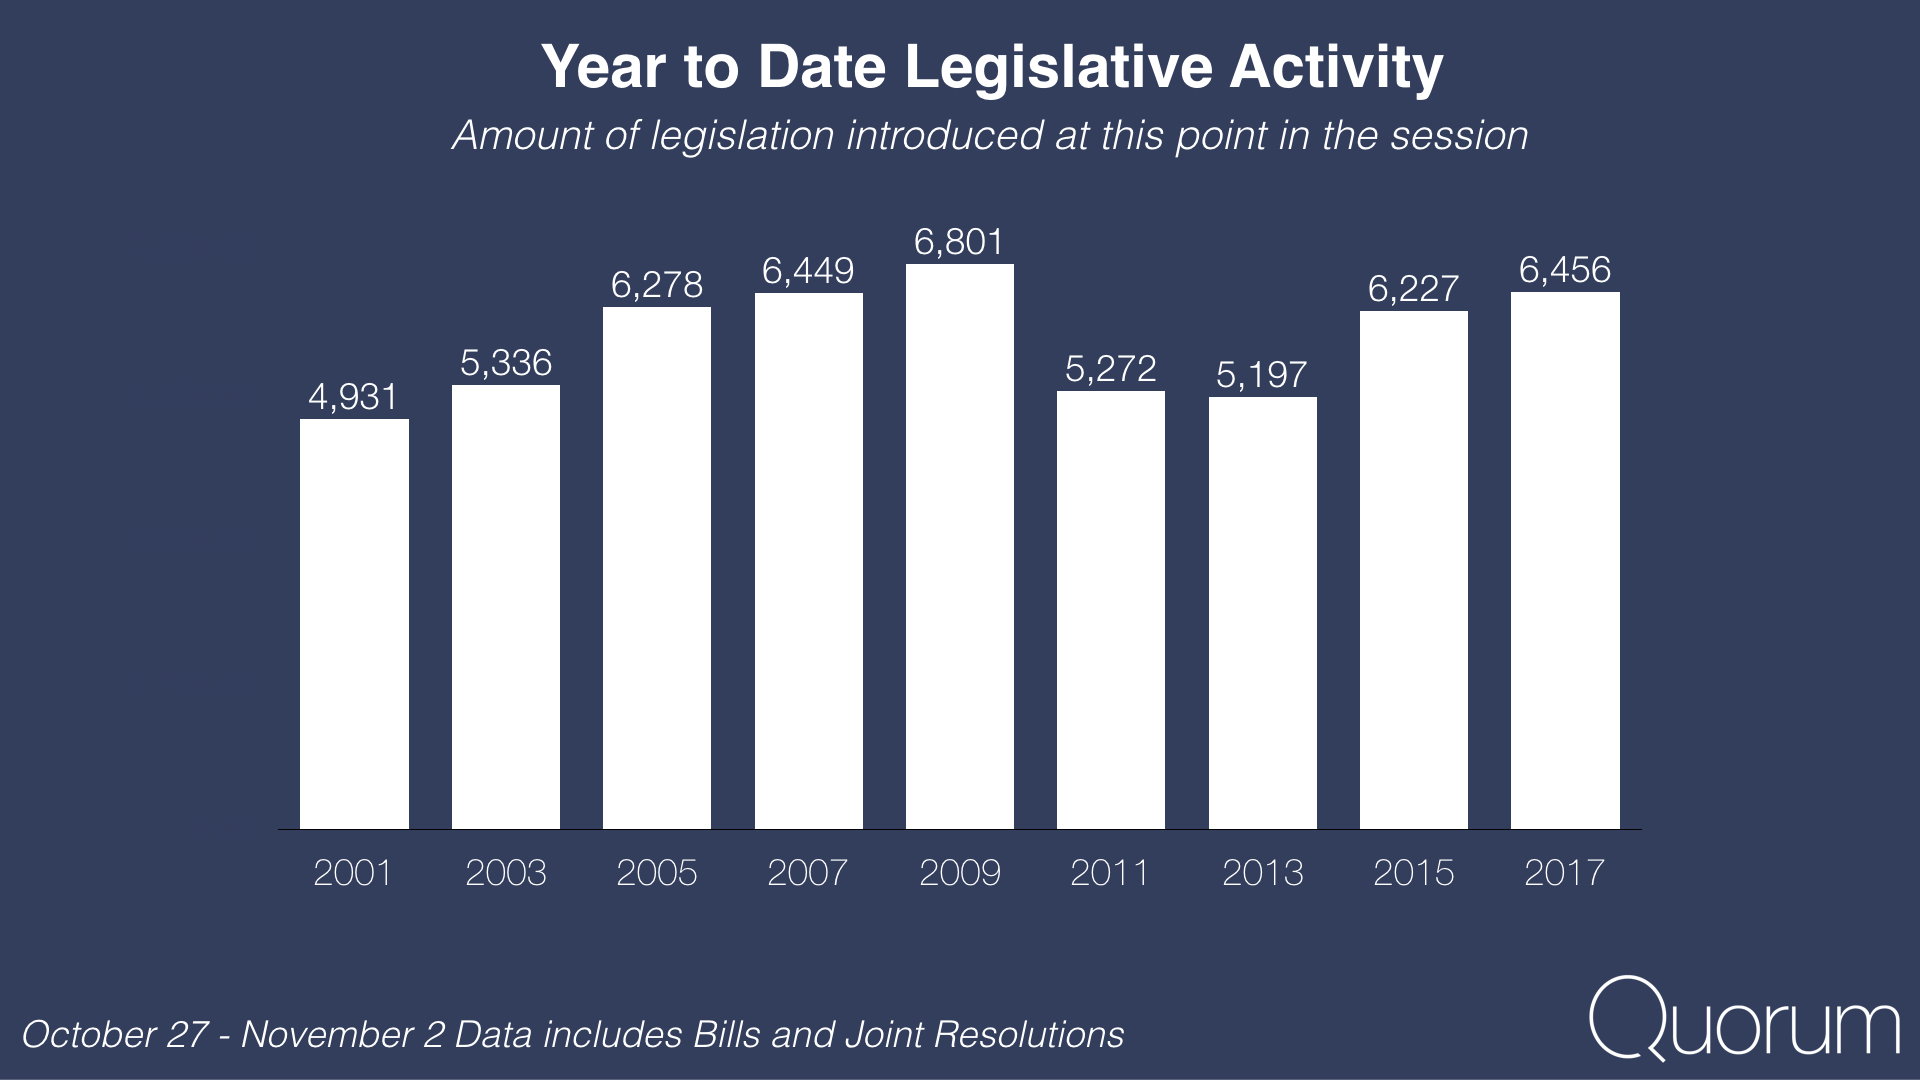 Year to date legislative activity.